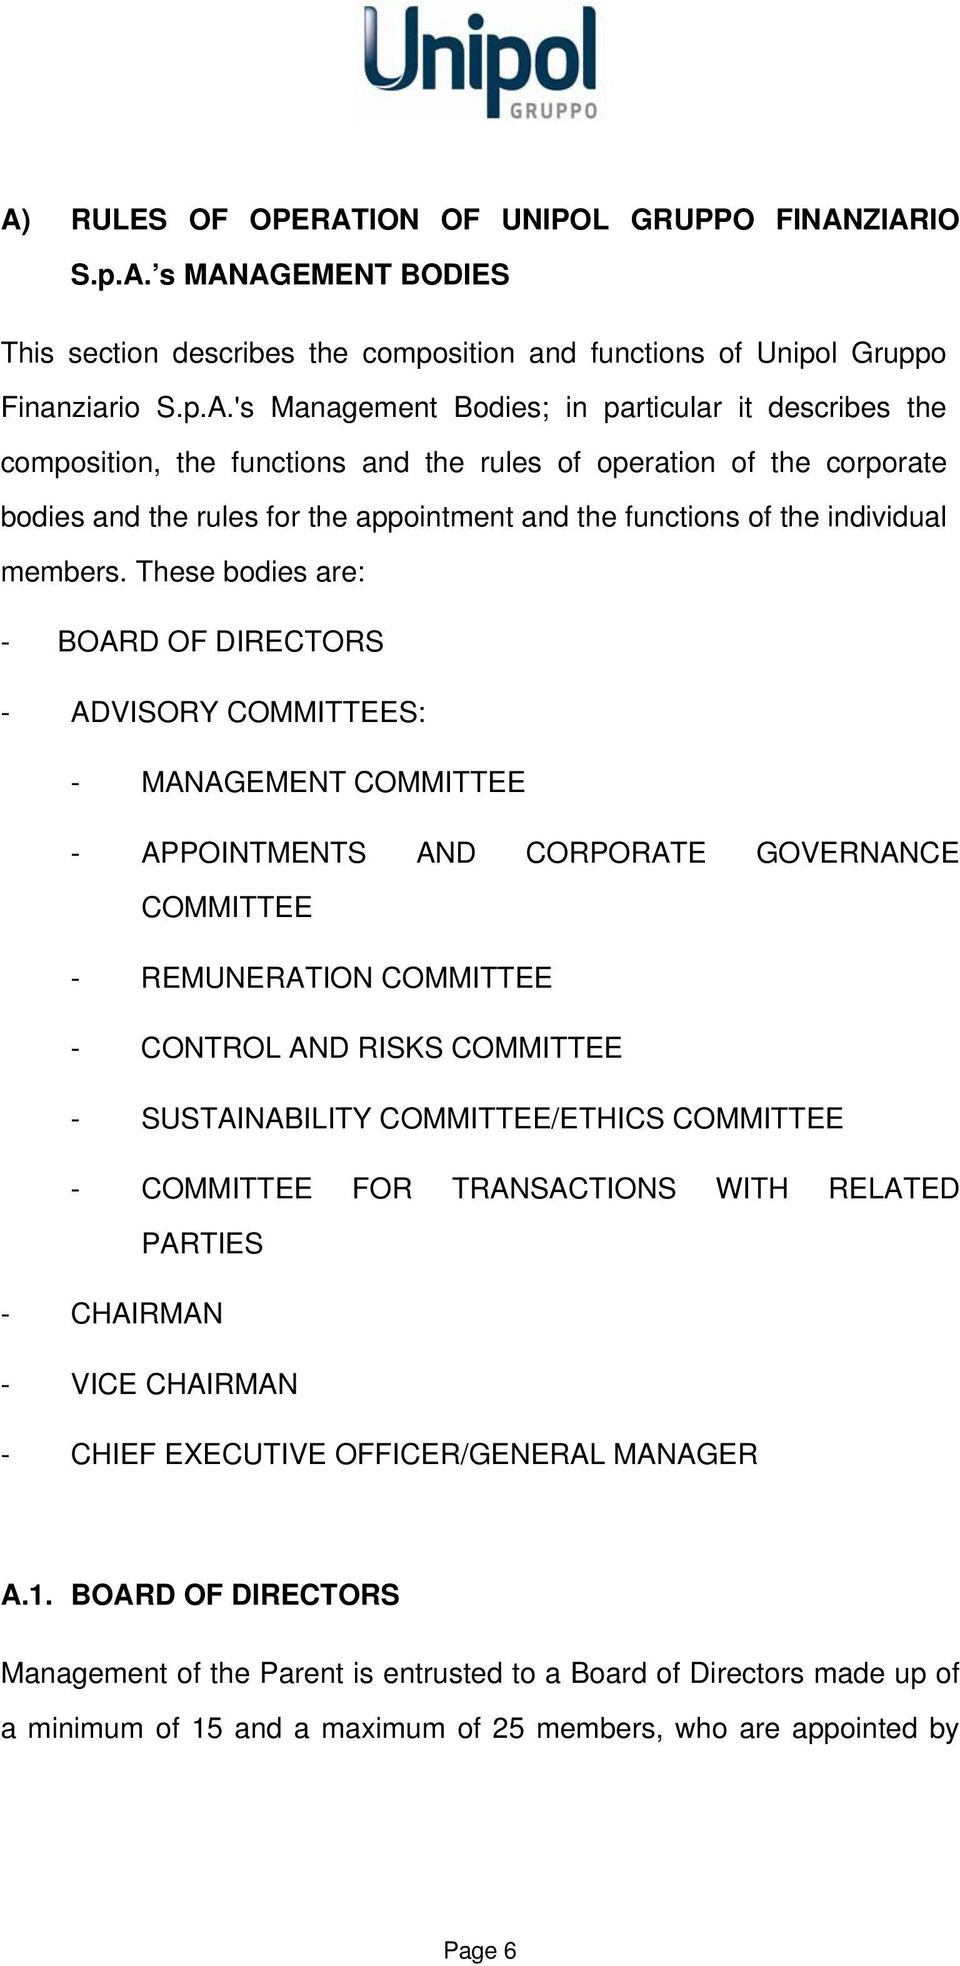 These bodies are: - BOARD OF DIRECTORS - ADVISORY COMMITTEES: - MANAGEMENT COMMITTEE - APPOINTMENTS AND CORPORATE GOVERNANCE COMMITTEE - REMUNERATION COMMITTEE - CONTROL AND RISKS COMMITTEE -